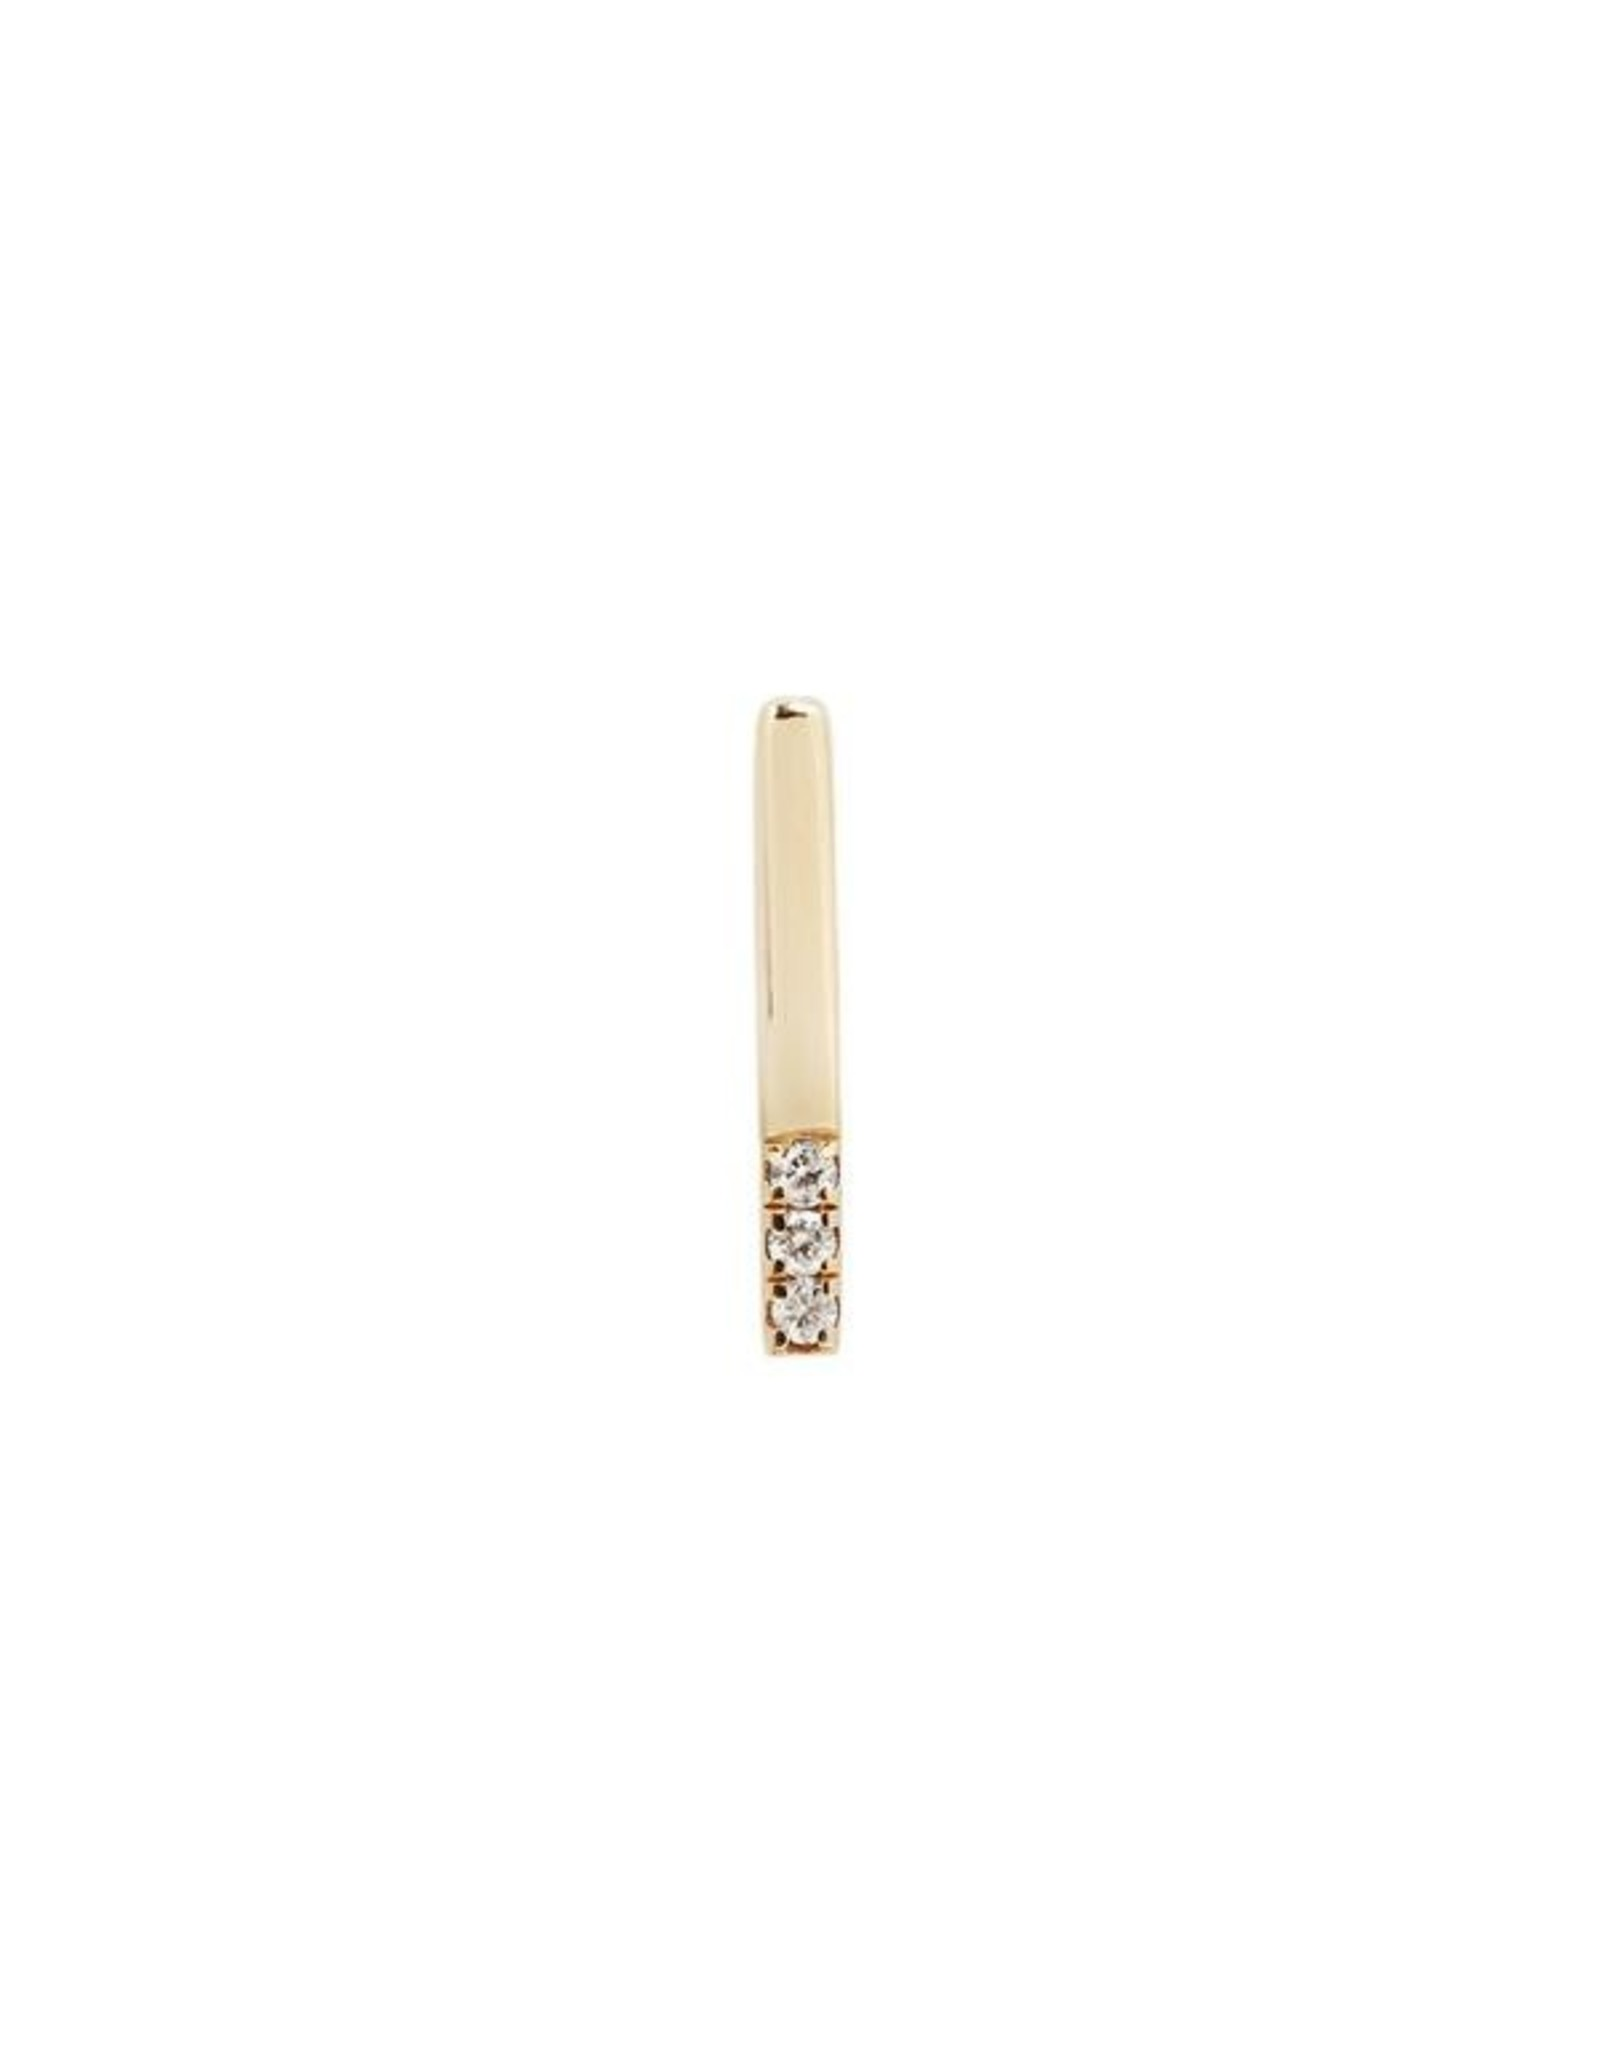 """Buddha Jewelry Organics Buddha Jewelry Organics gold """"Love Lines"""" press fit end with CZ"""